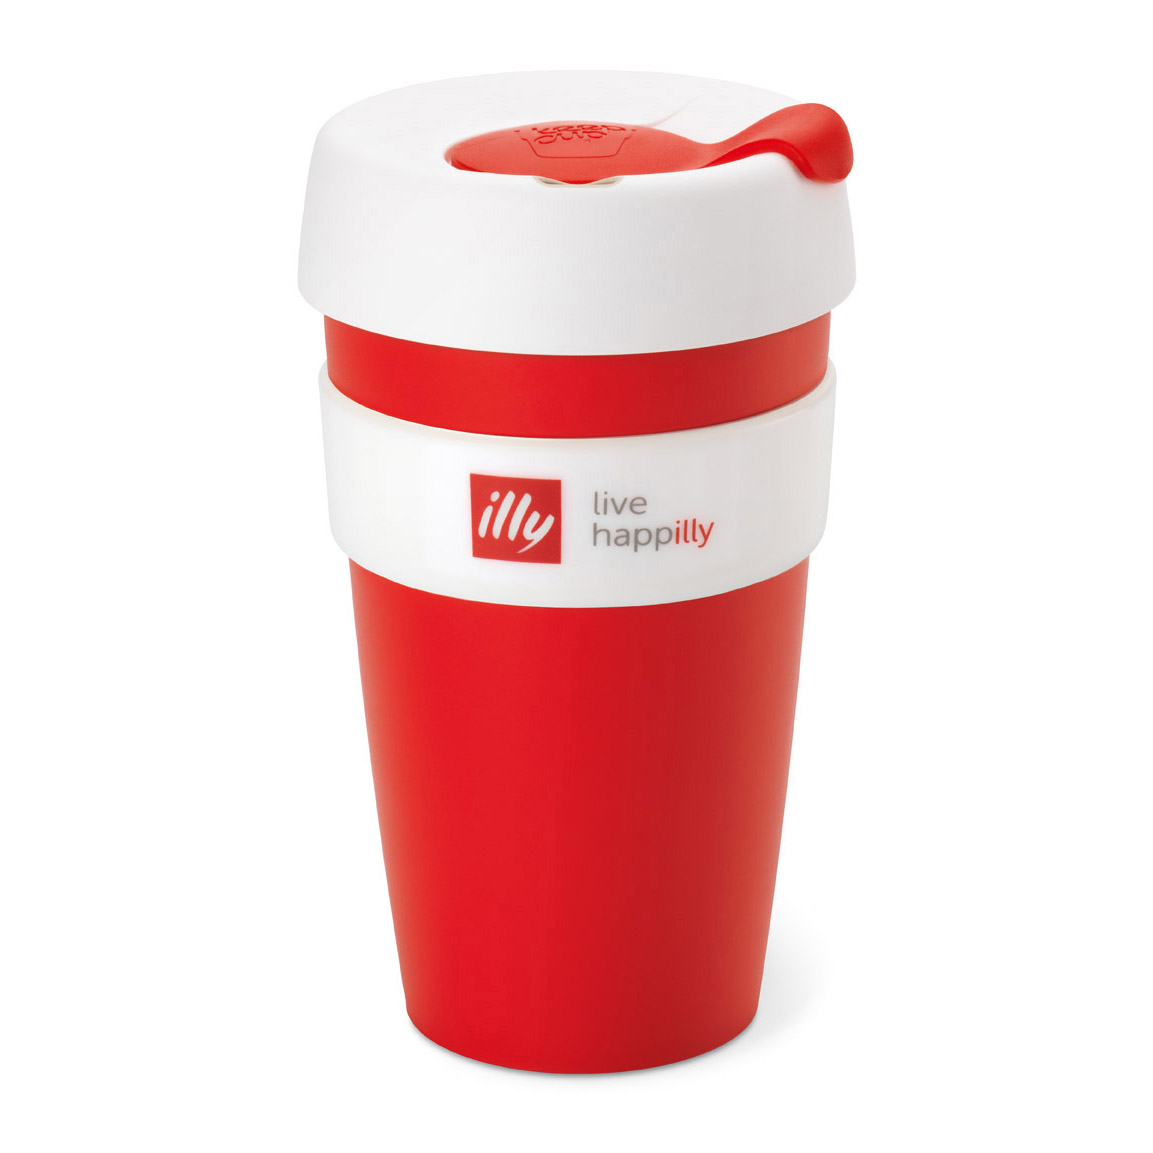 Illy Live HAPPilly KeepCup 16oz -  Red & White (pc)